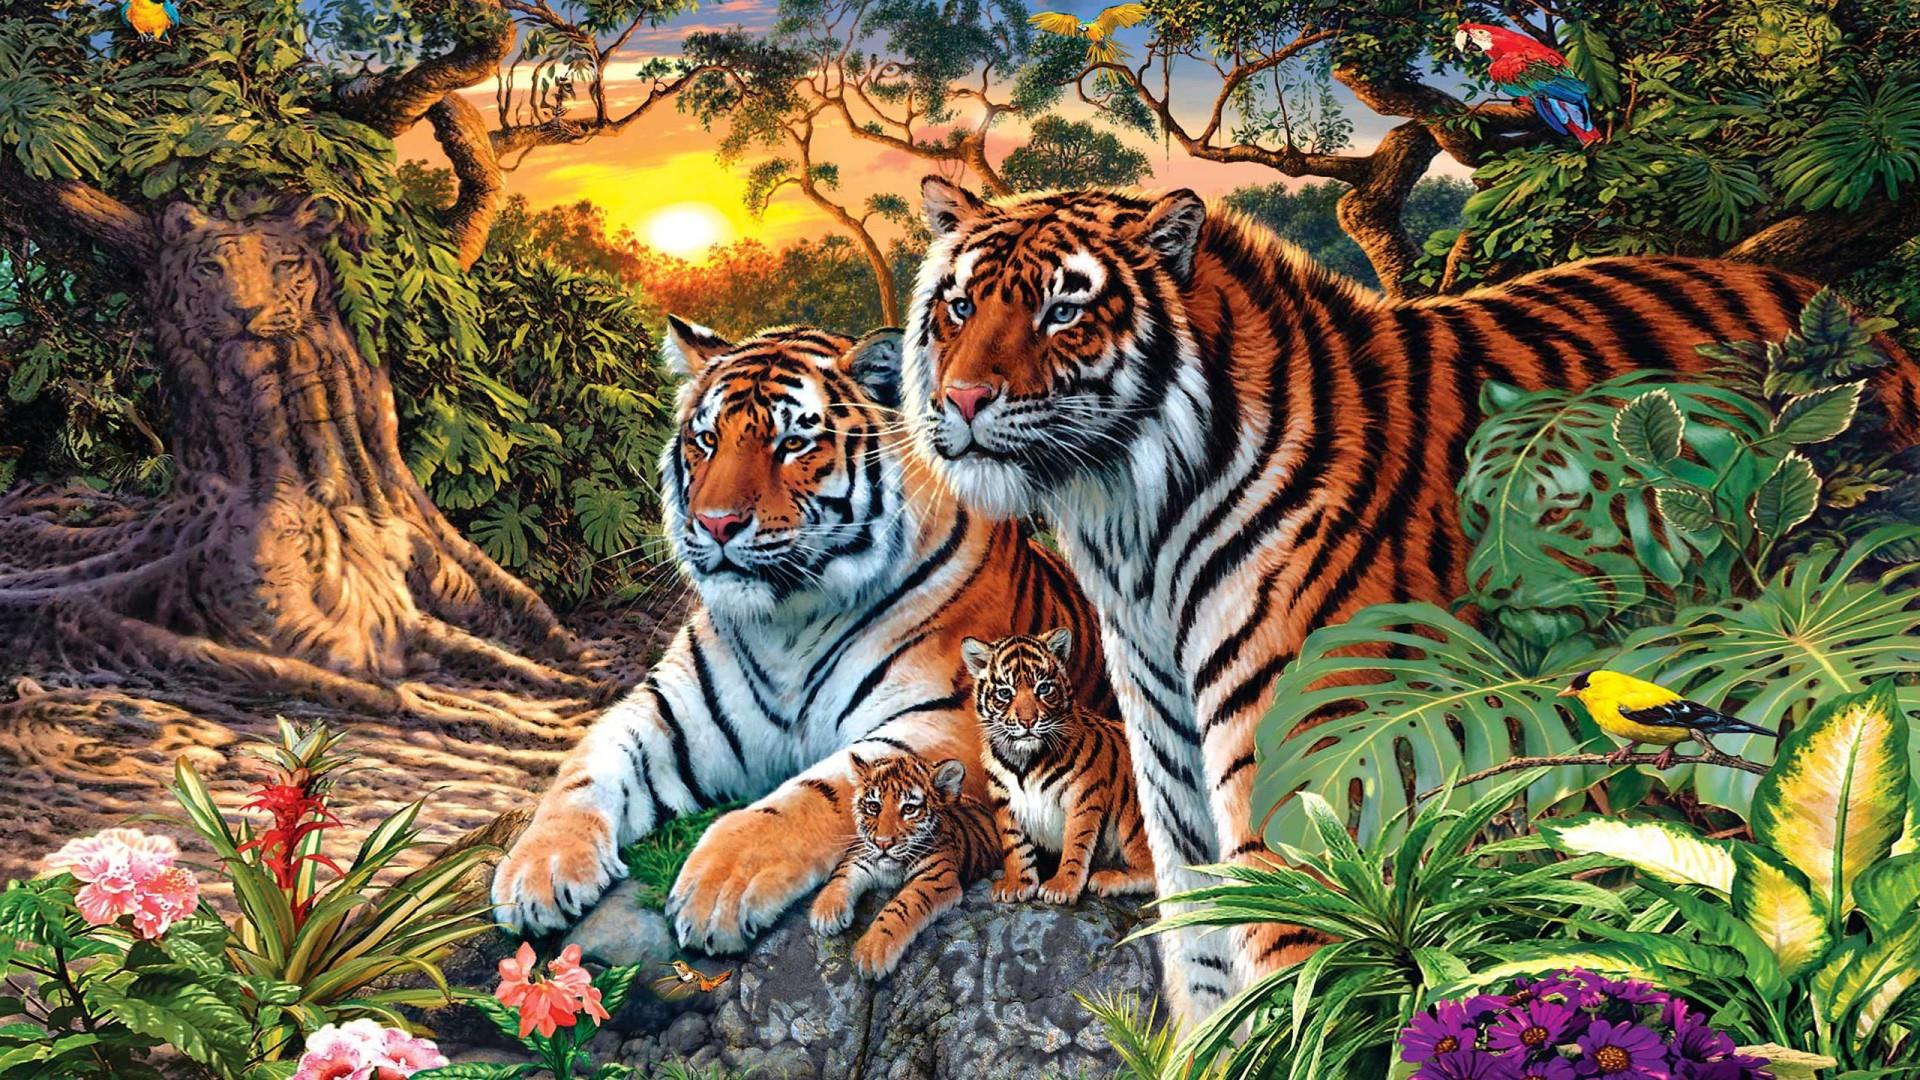 More than a tiger family in the jungel... wallpaper